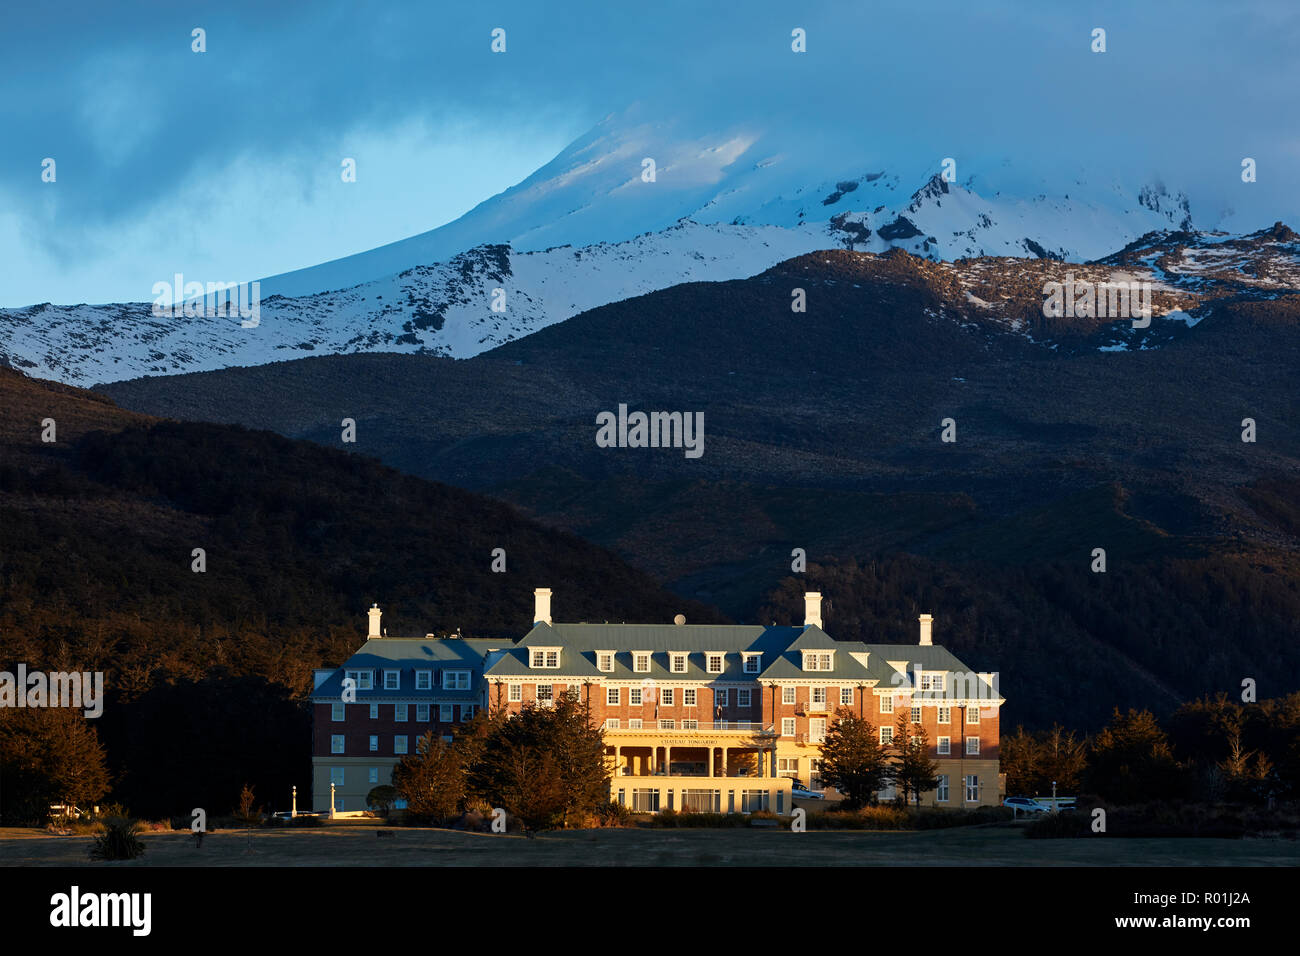 Grand Chateau and Mt Ruapehu, Central Plateau, North Island, New Zealand - Stock Image